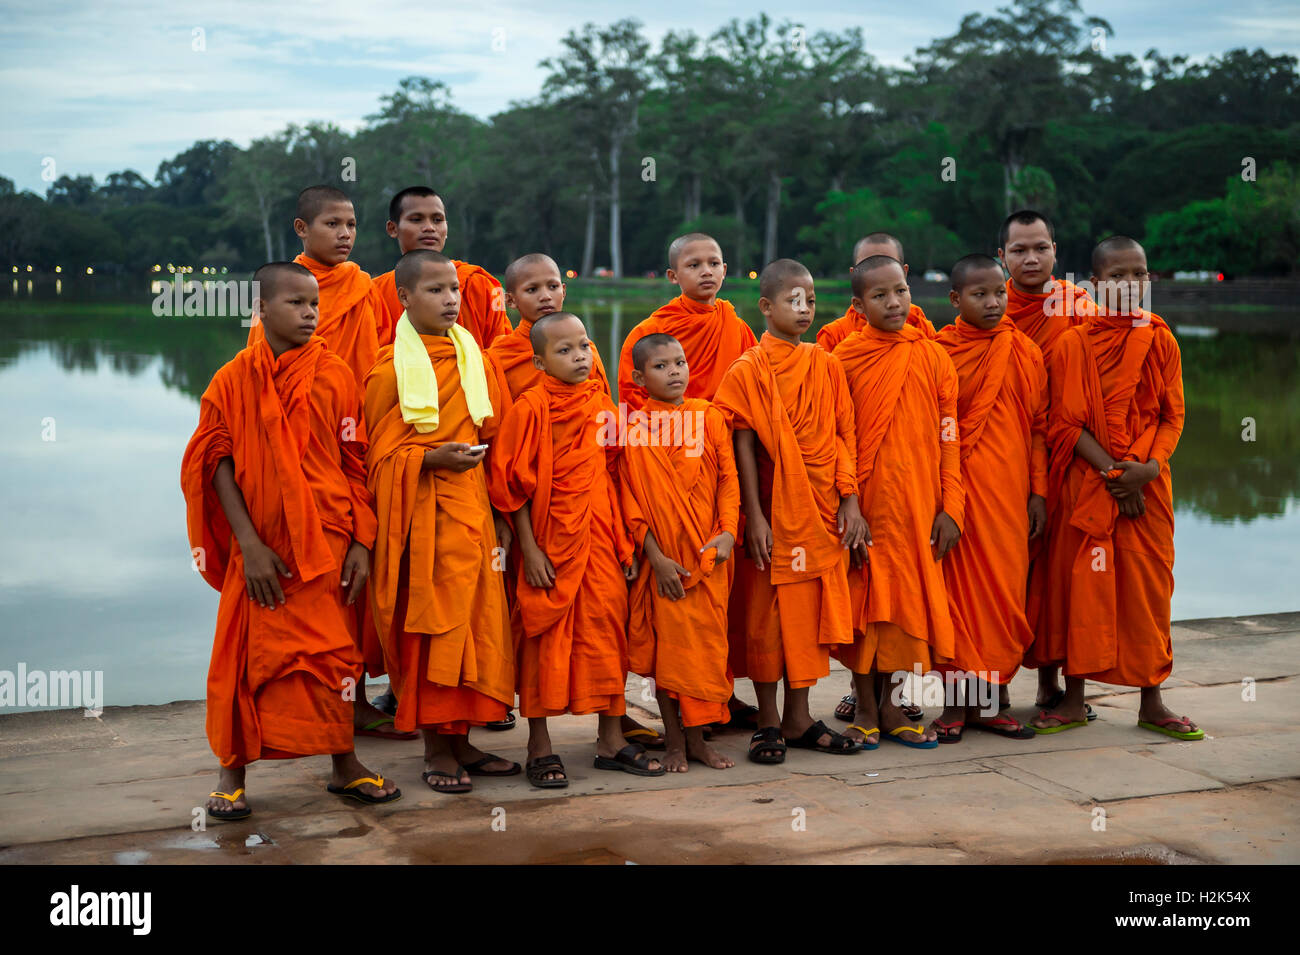 SIEM REAP, CAMBODIA - OCTOBER 30, 2014: A group of novice Buddhist monks in orange robes pose on the moat to Angkor - Stock Image